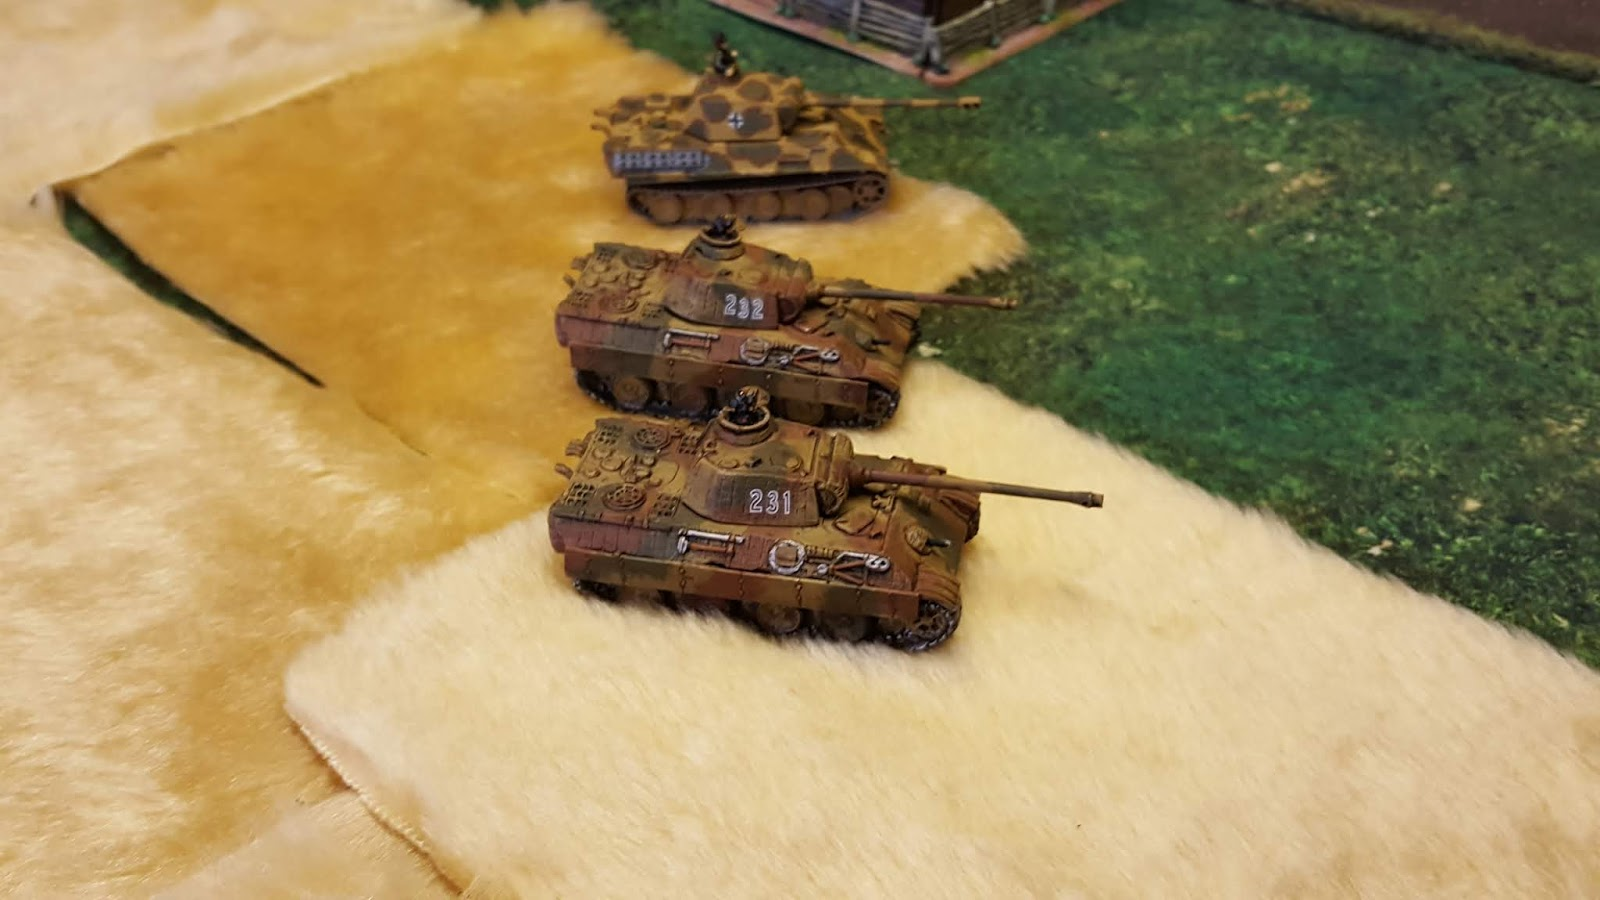 Panthers deploy to thwart Russians